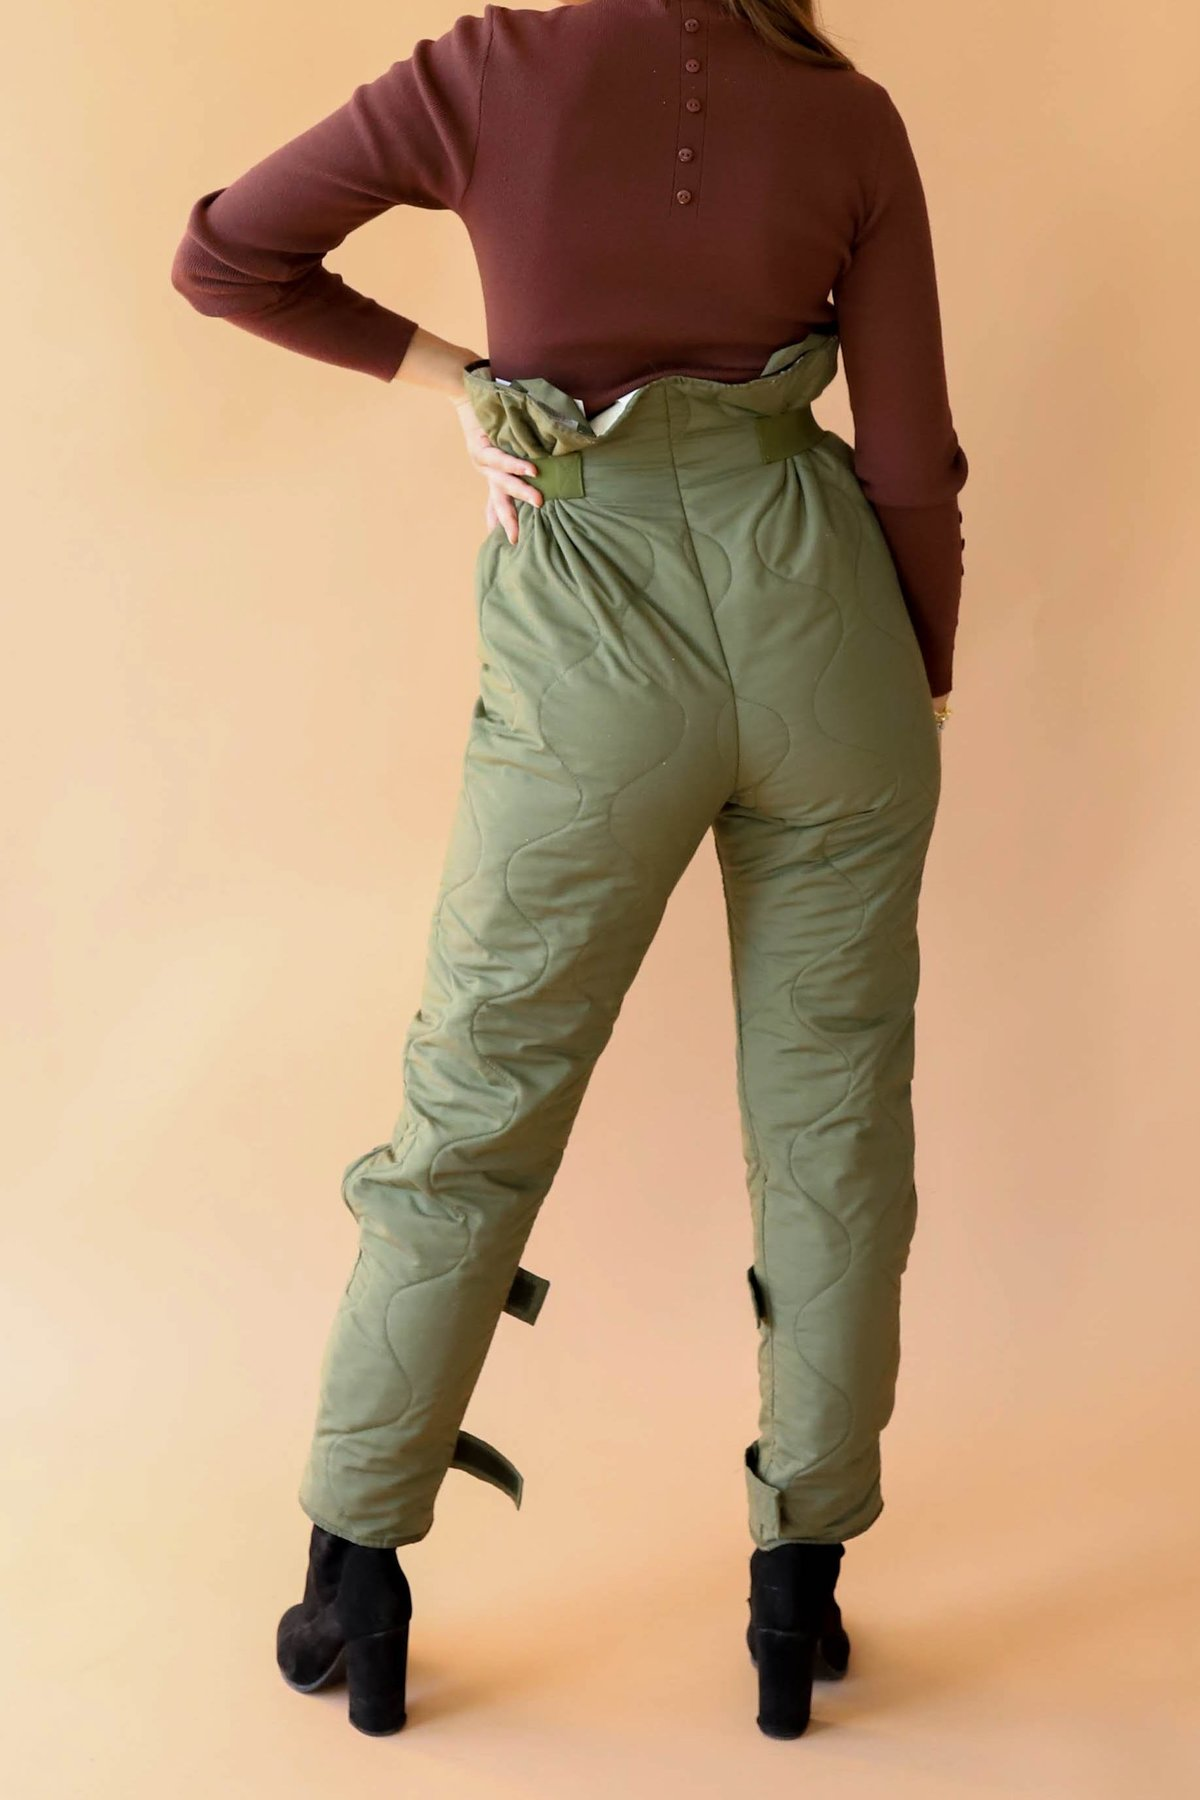 M Size Vintage Quilted Pants; Warm Unisex Pants; Army Green Pants; Thermal Pants; Quilted Pant Liner; Soldiers Pants; Military Underwear